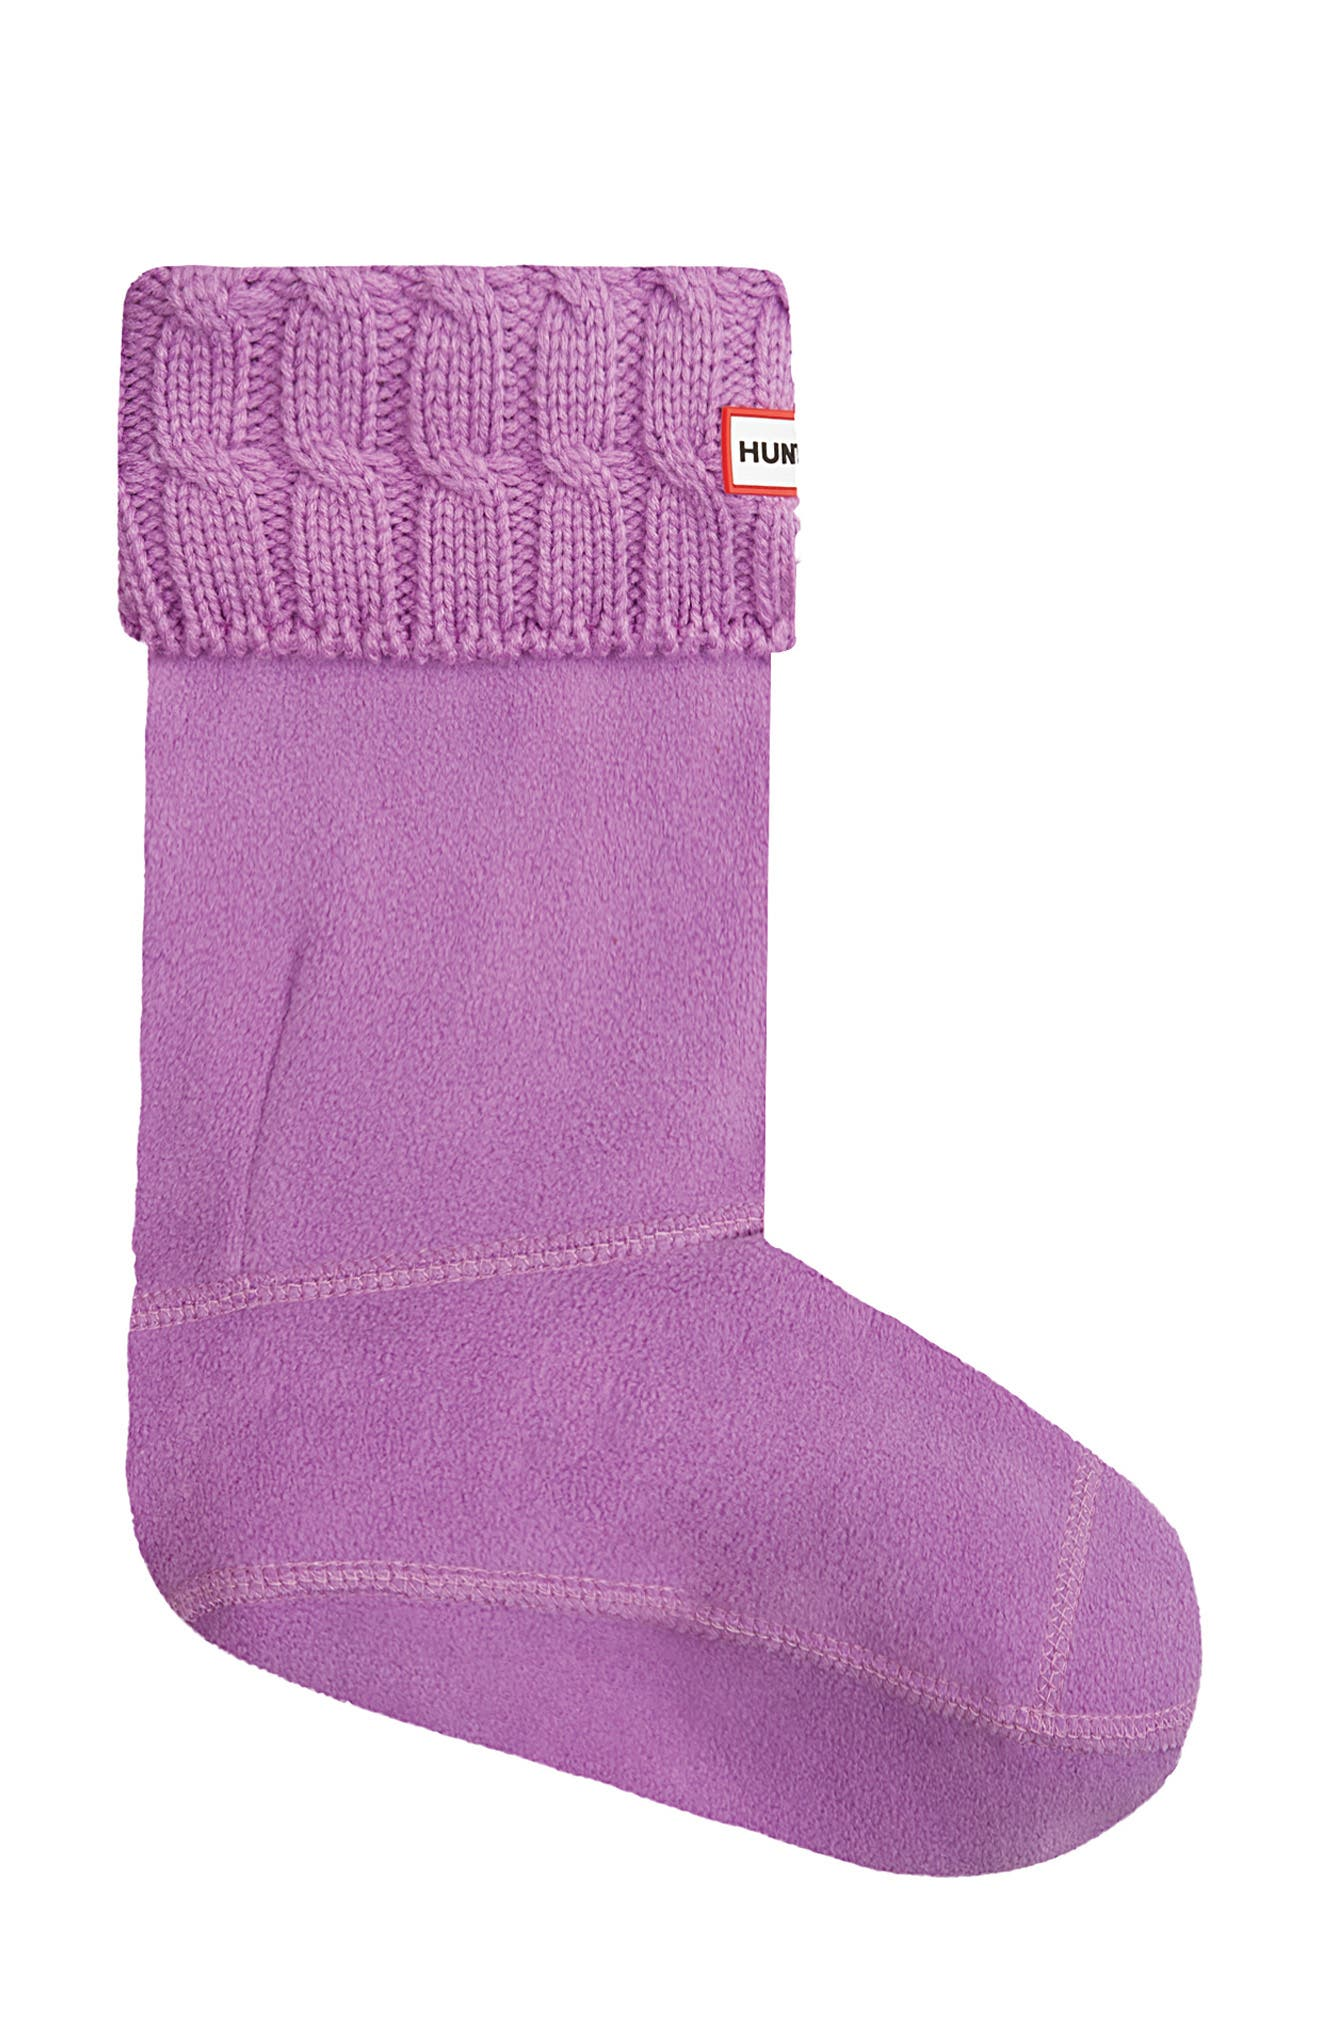 Original Short Cable Knit Cuff Welly Boot Socks,                             Main thumbnail 1, color,                             THISTLE